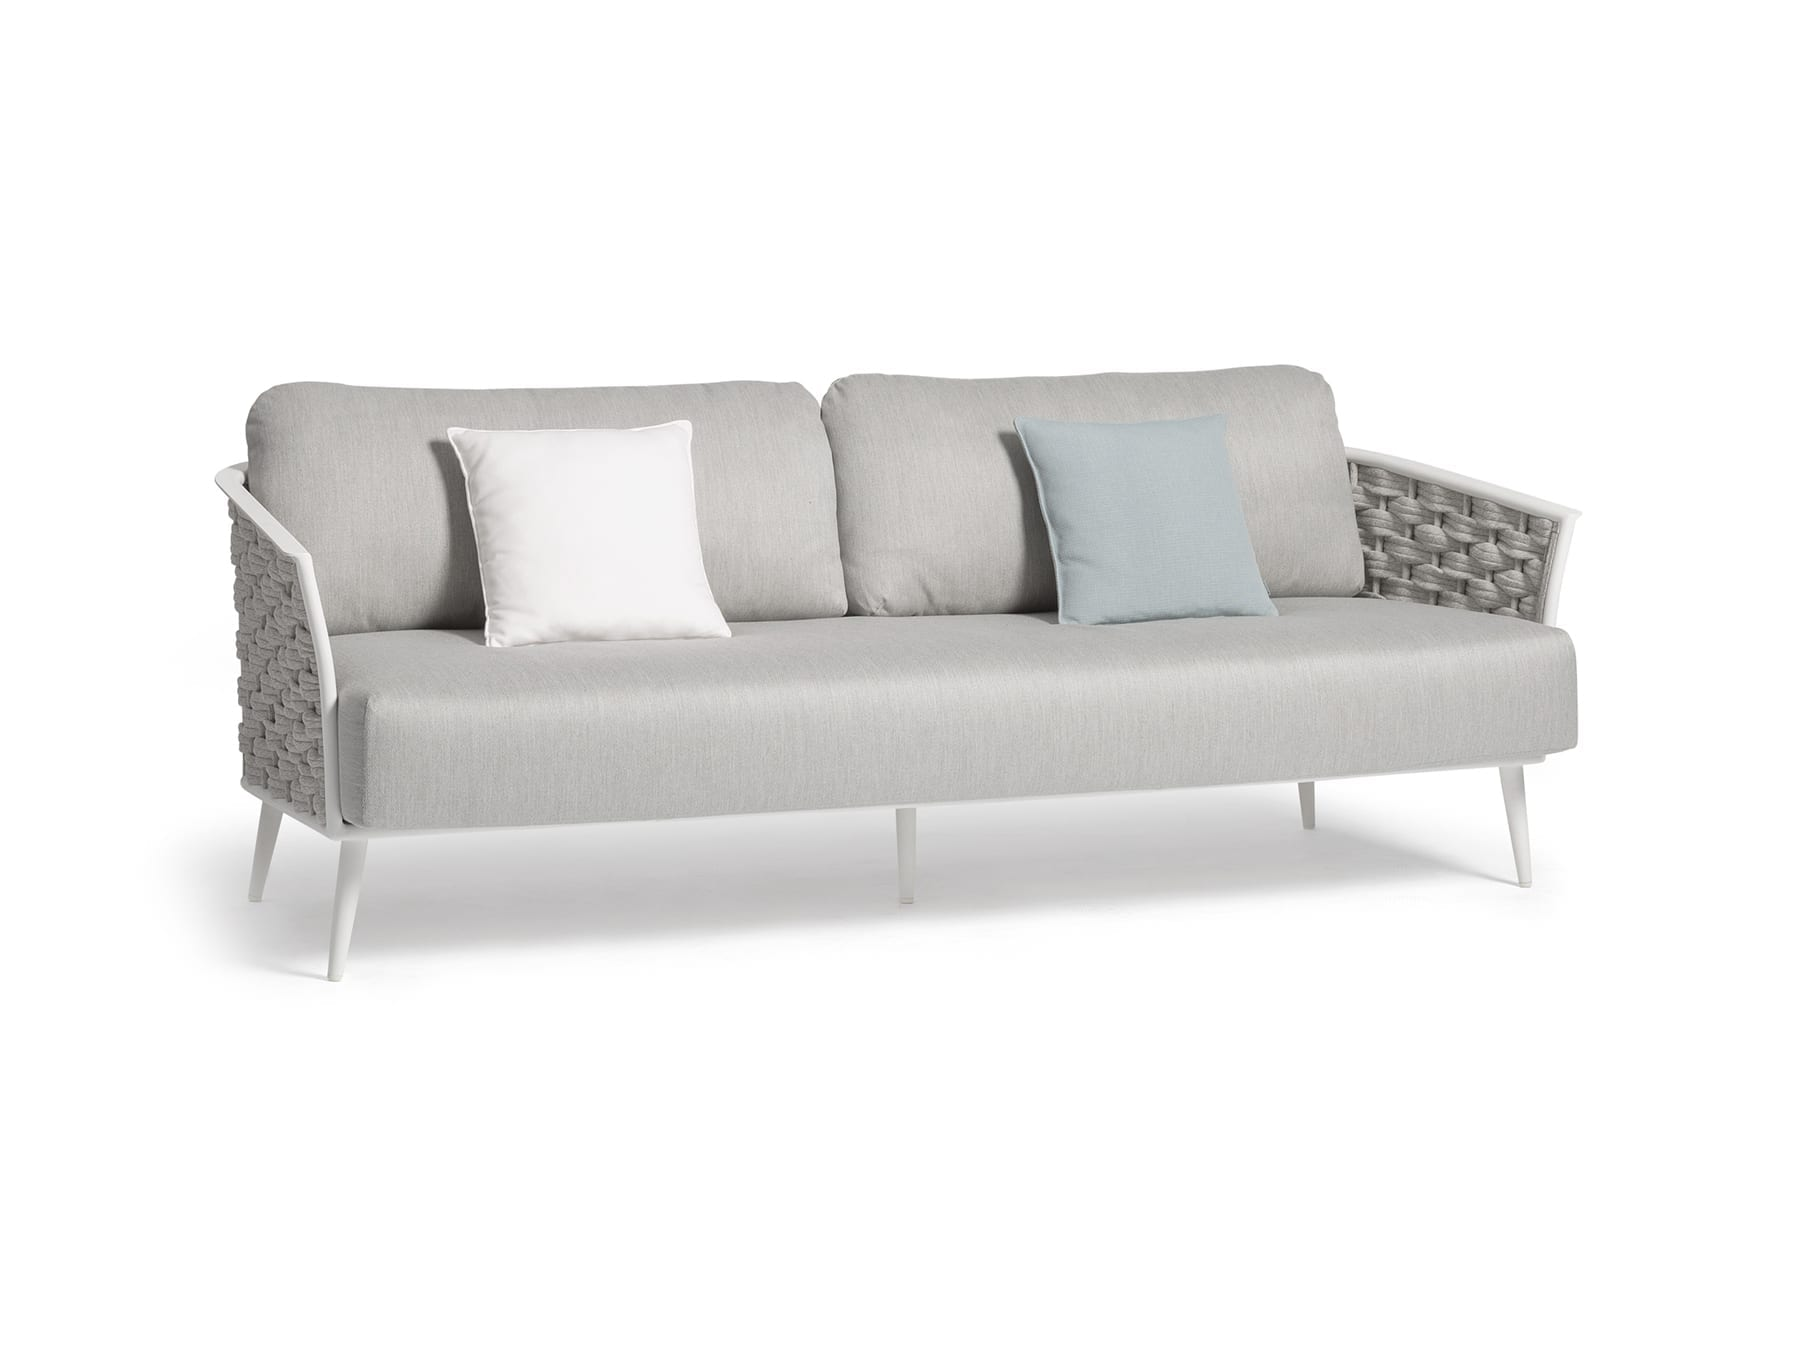 Manutti Cascade 3 Seater Sofa available at McKenzie & Willis